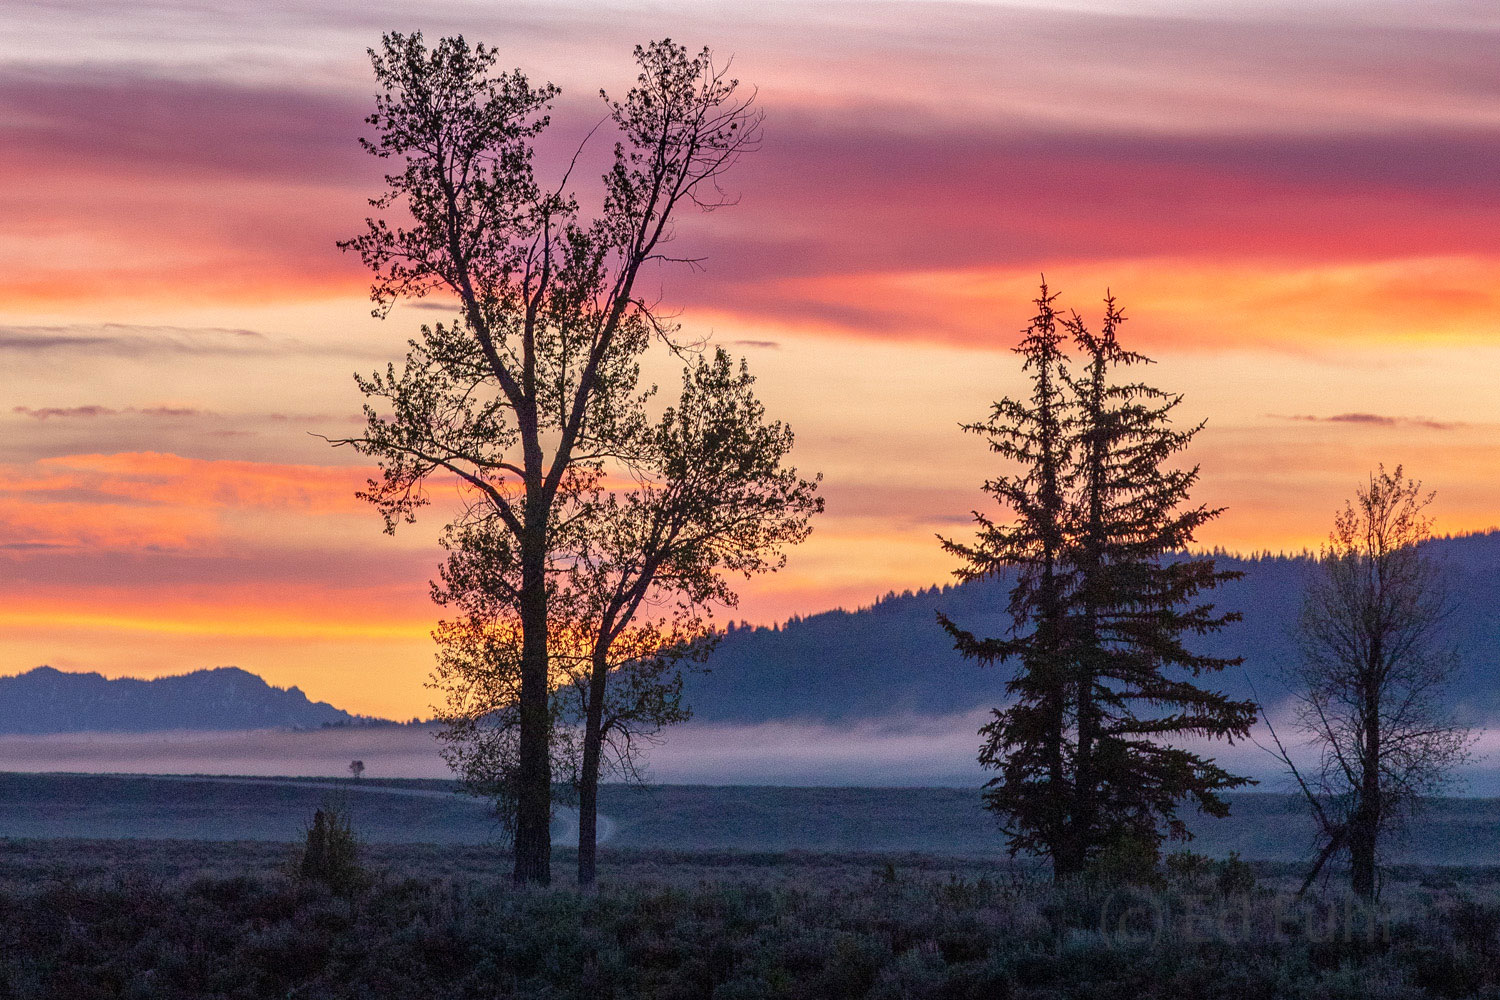 grand teton, springtime, sunrise, blacktail pond, spring photo, image, 2018, photo